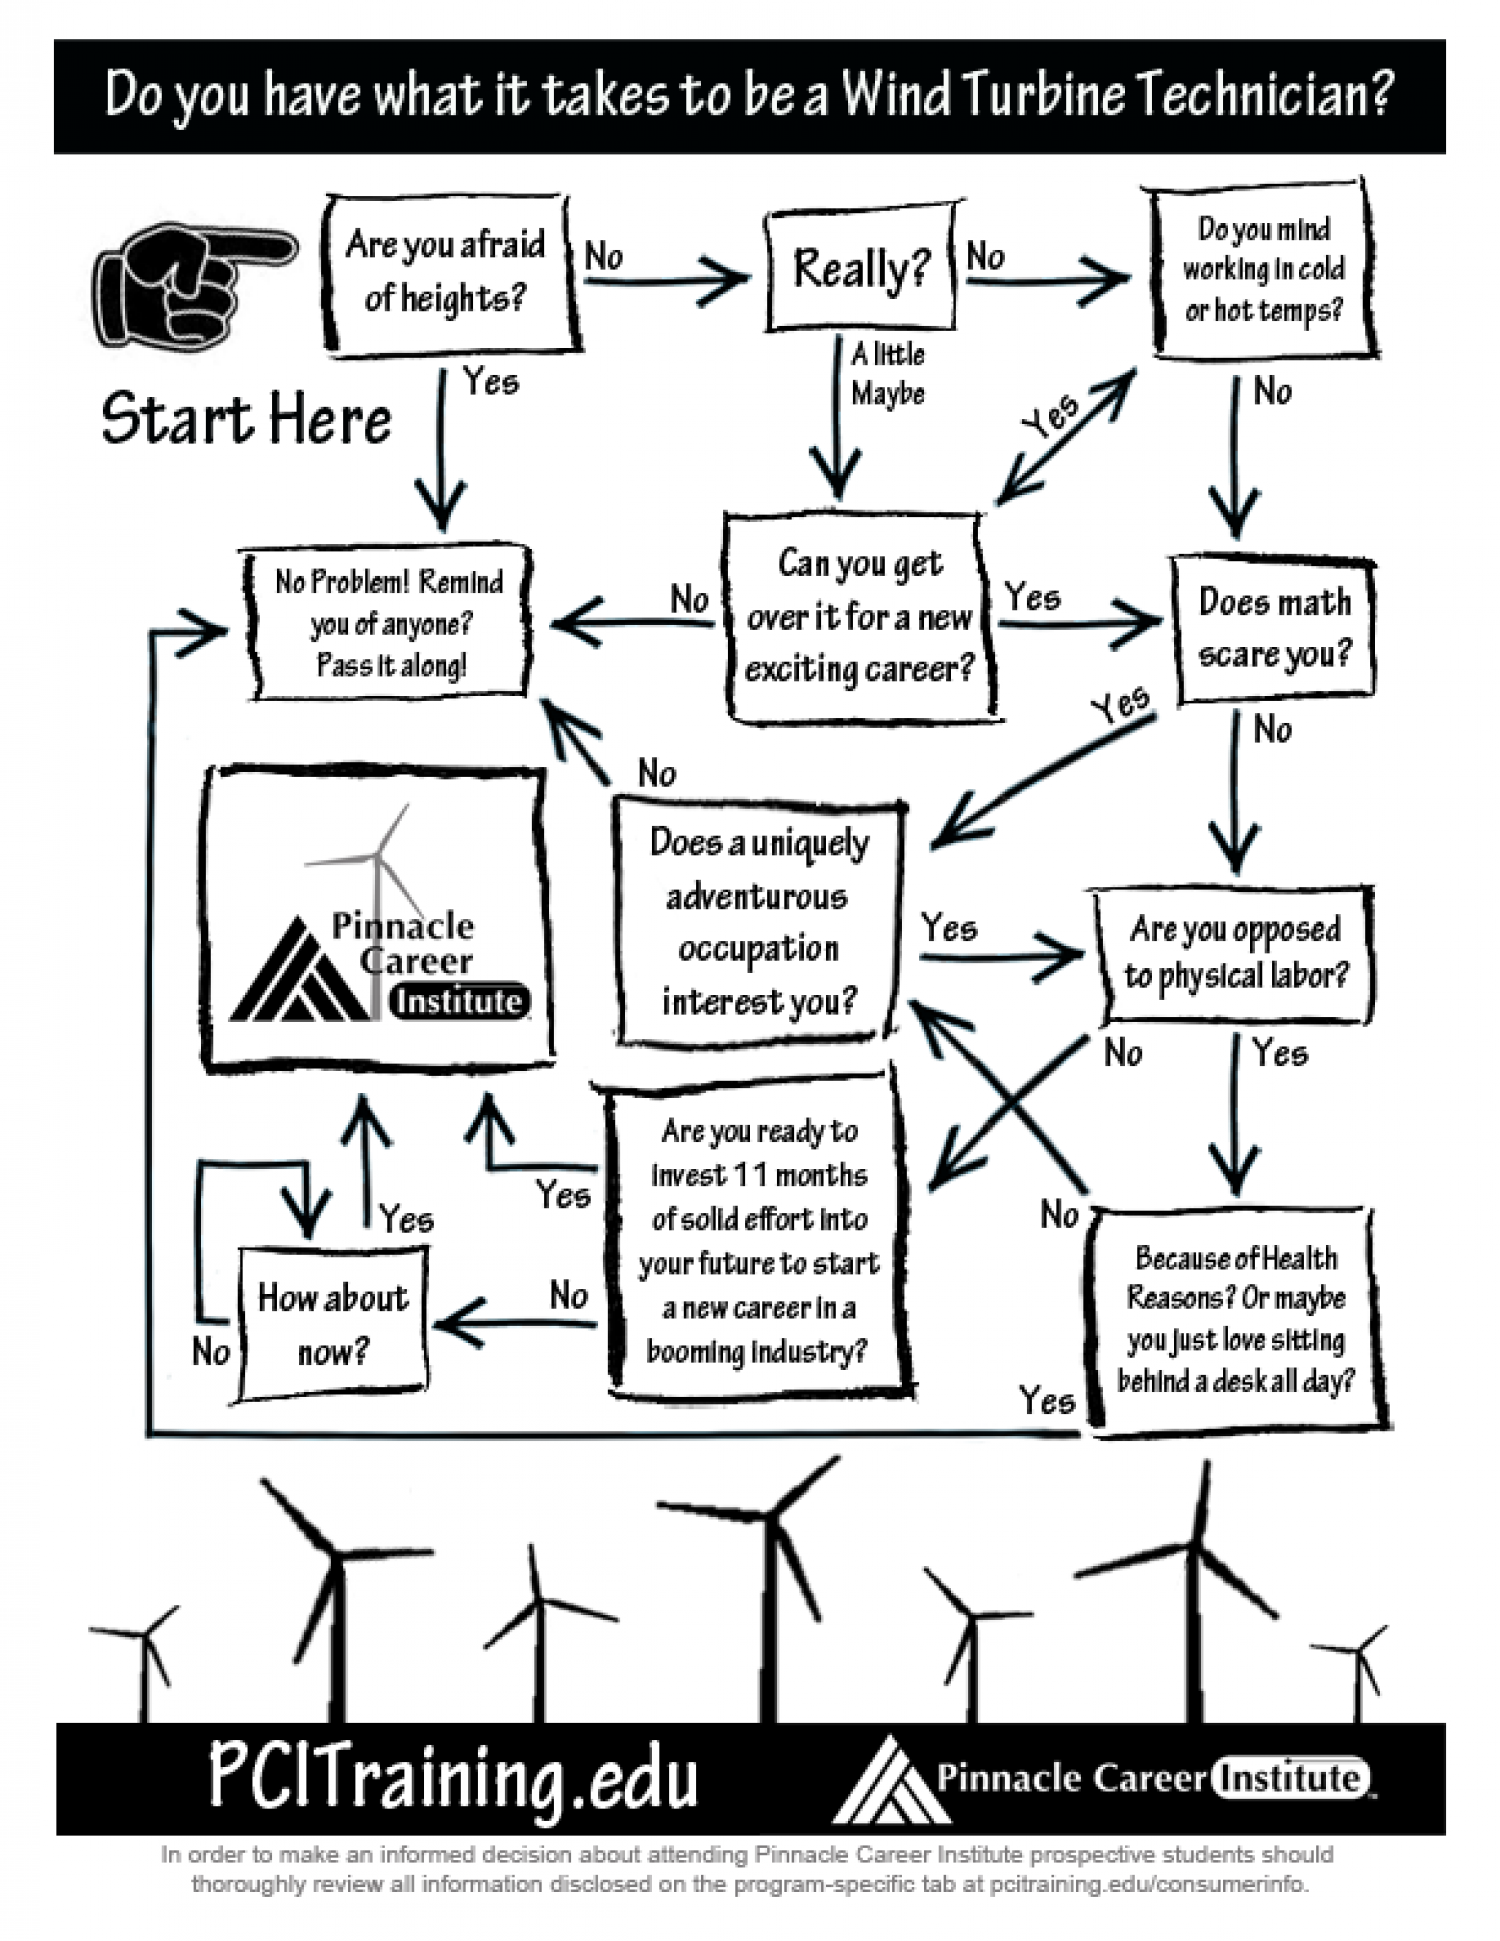 To be a Wind Turbine Technician - Yes or No? Infographic